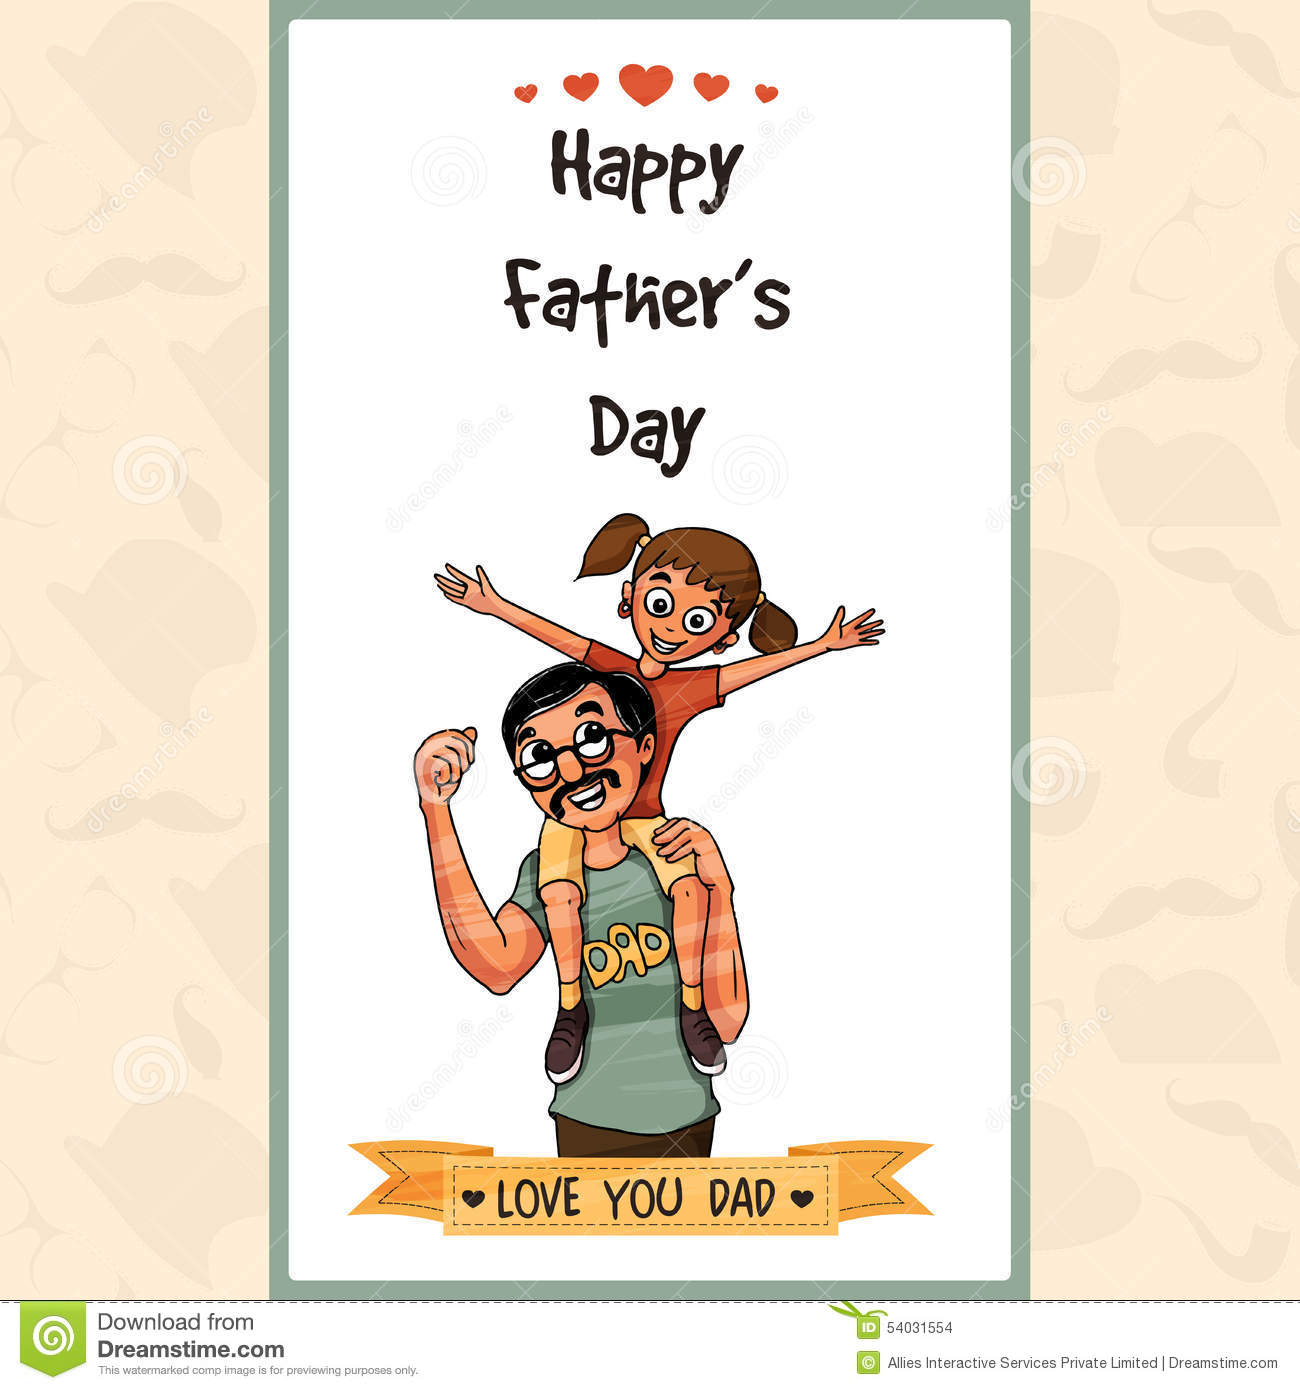 Greeting Card For Happy Fathers Day Celebration. Stock ...